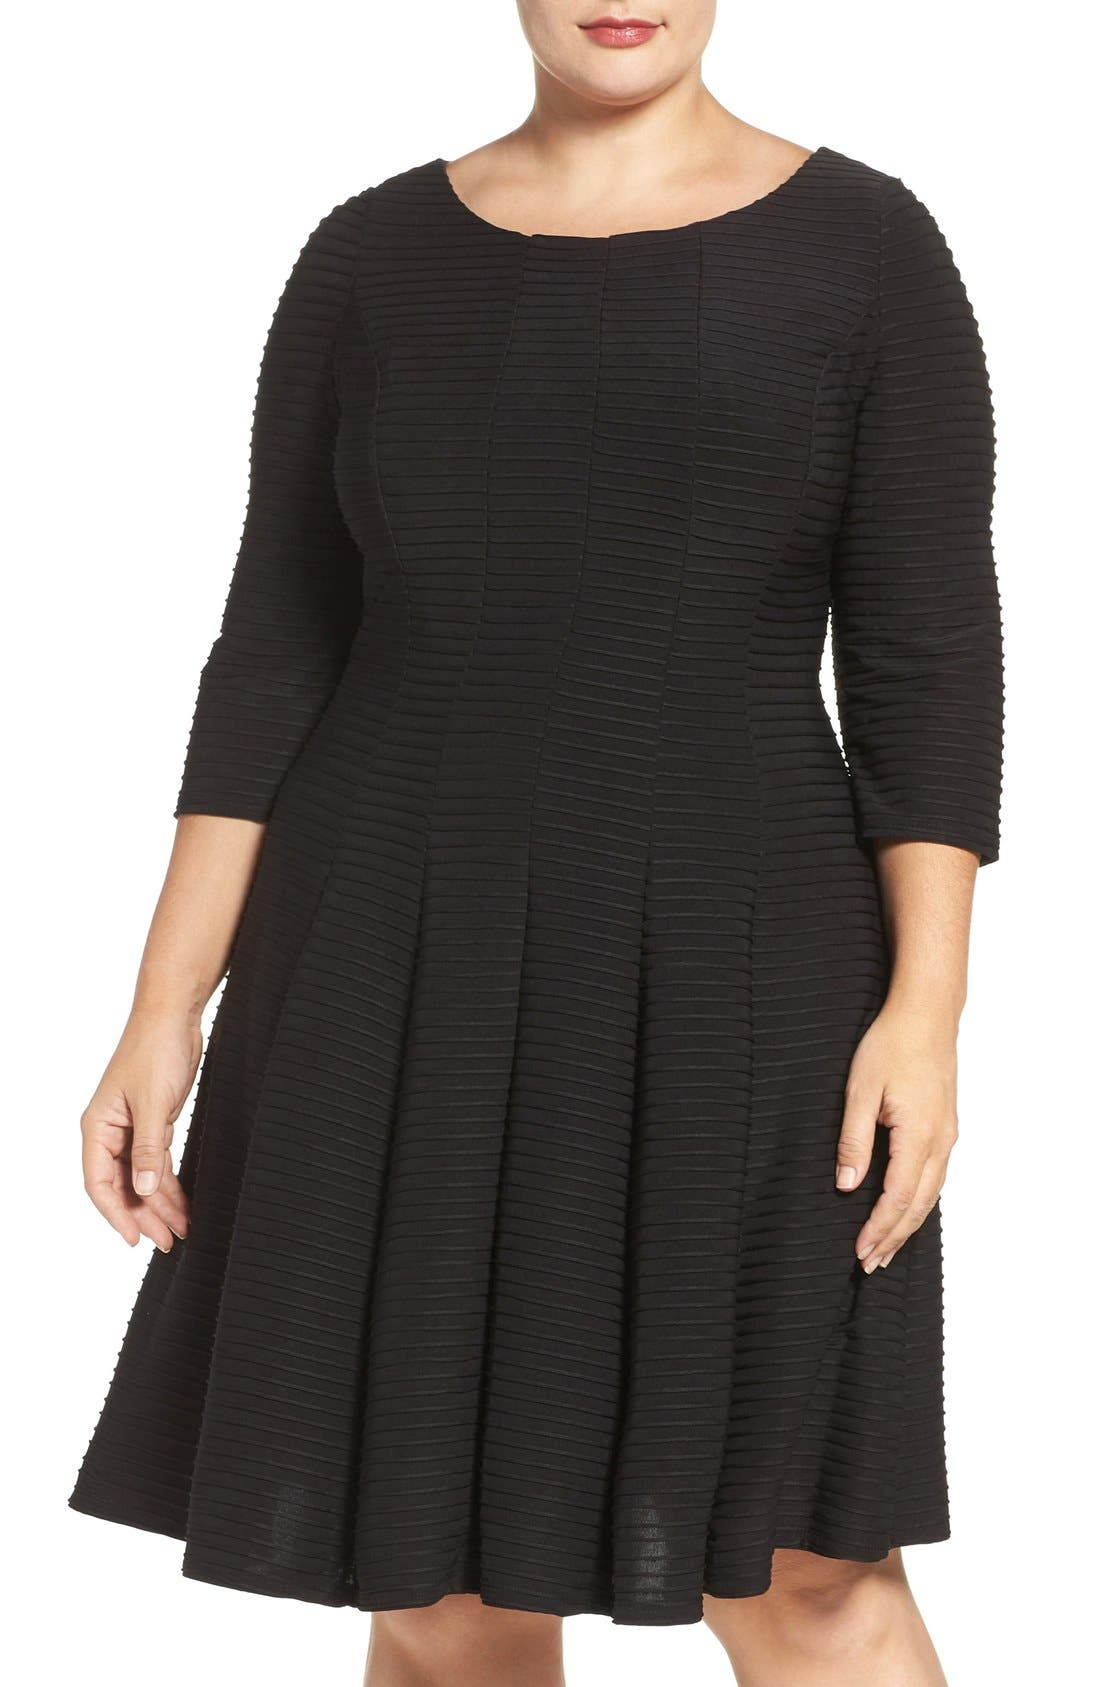 Alternate Image 1 Selected - Gabby Skye Pintuck Knit Fit & Flare Dress (Plus Size)